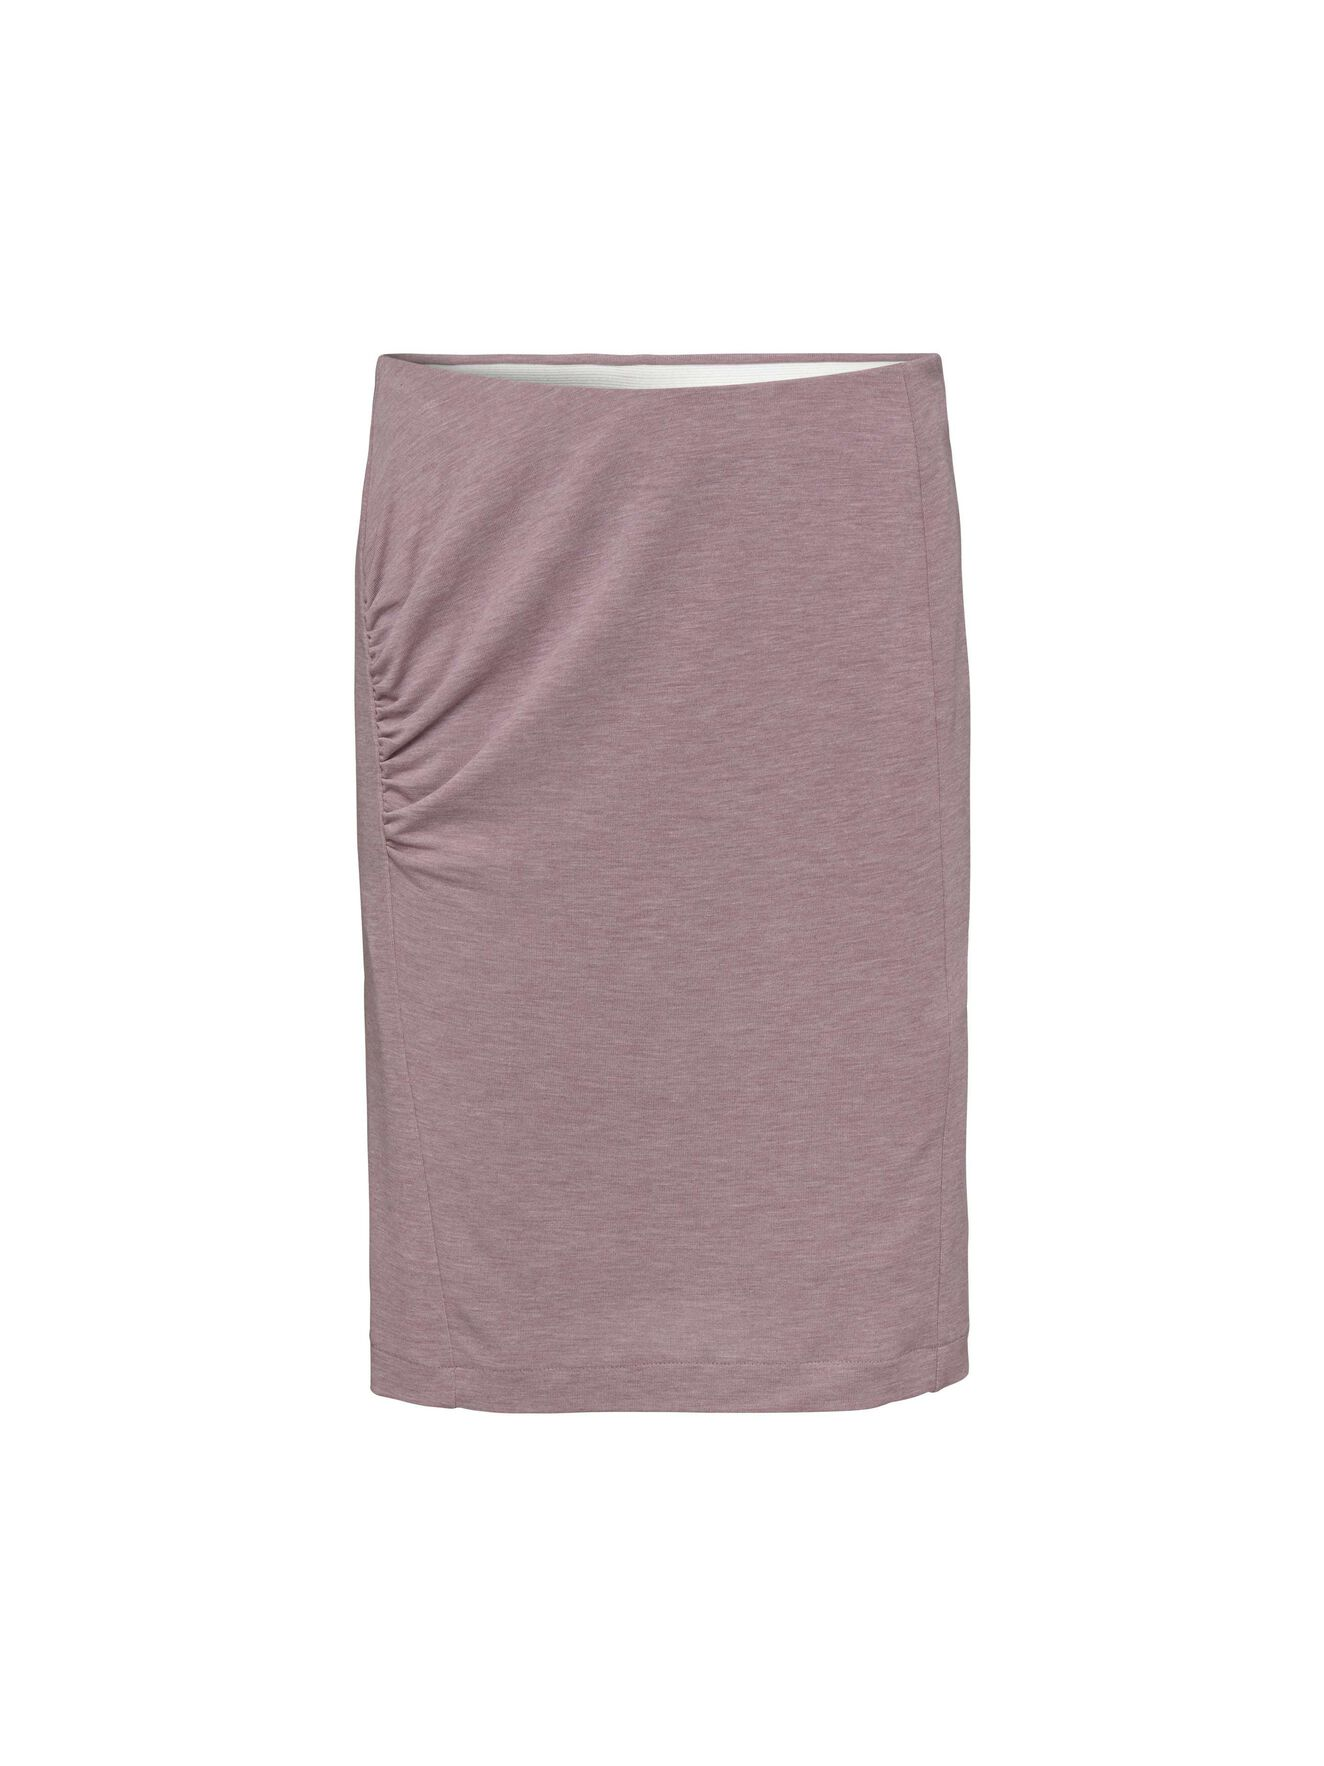 Anea Skirt in Mellow Mulberry from Tiger of Sweden